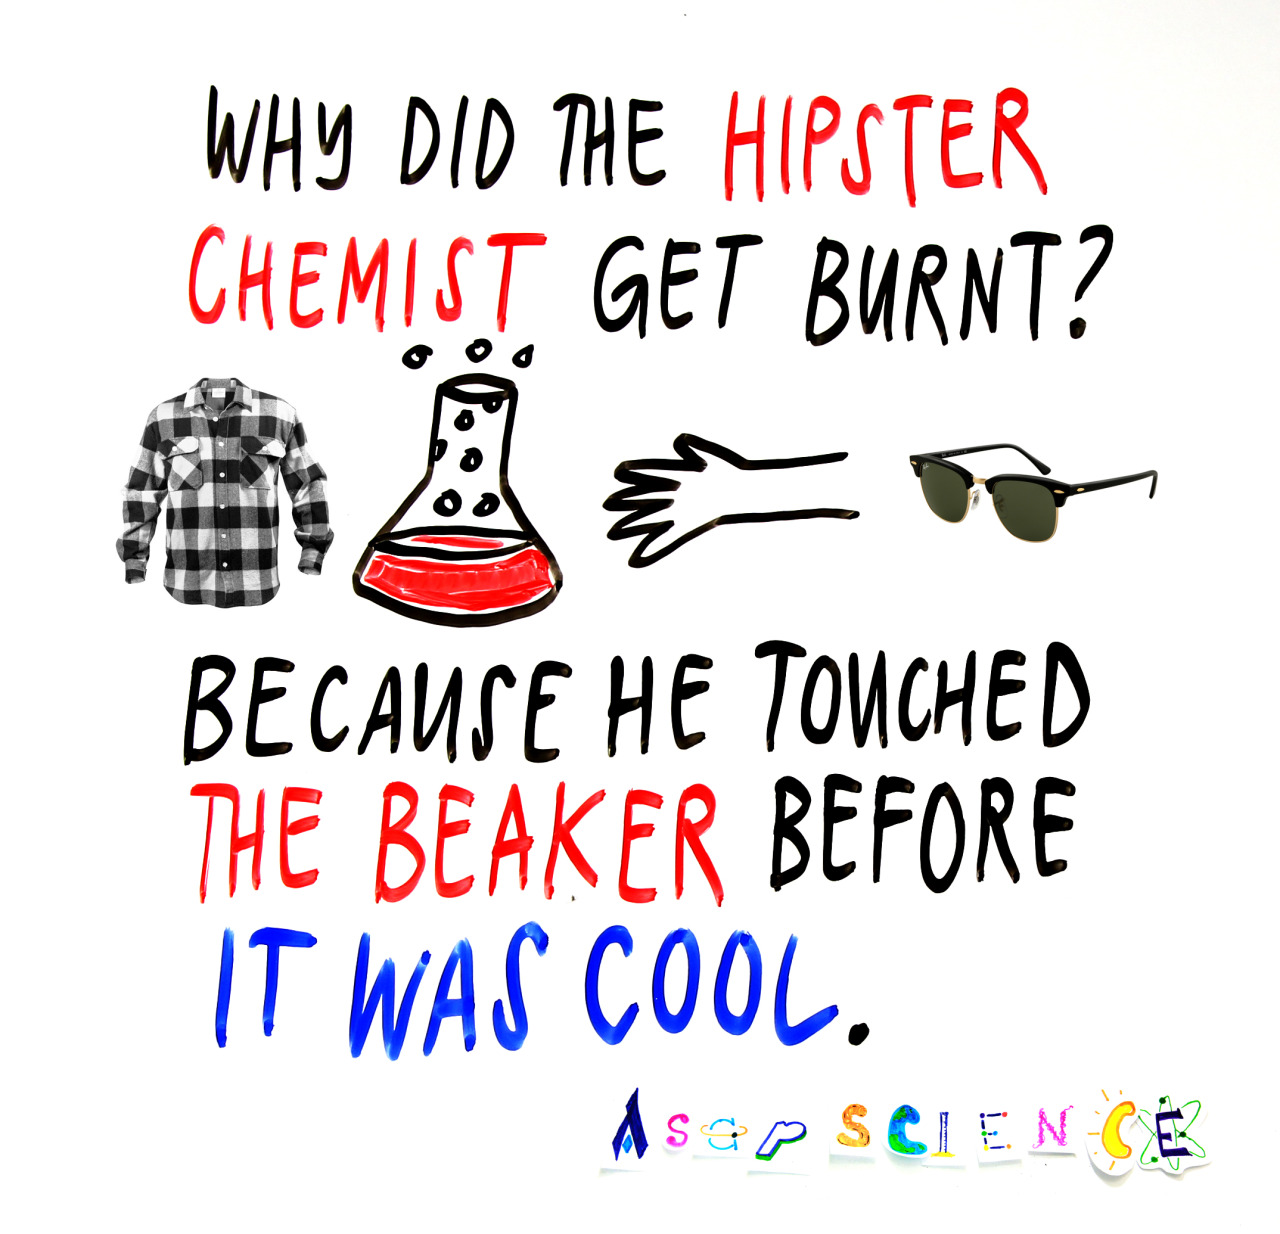 hipster-science.jpg